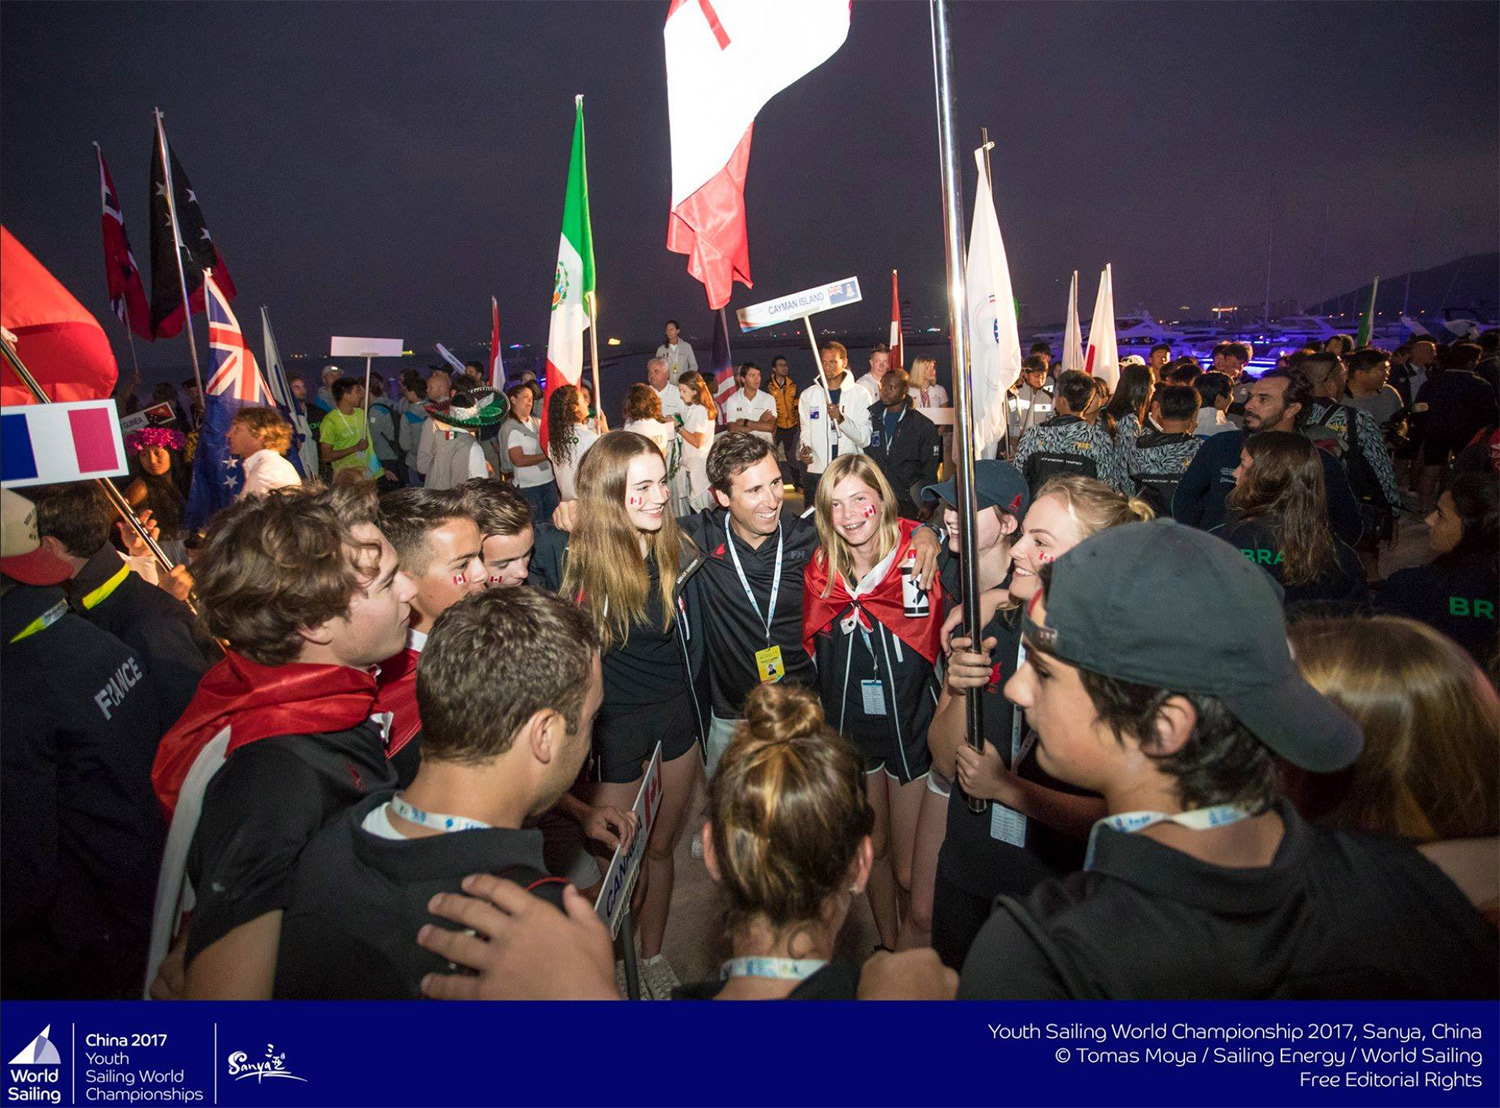 Opening Ceremonies at ISAF Youth Worlds in Sanya, China (December 2017)